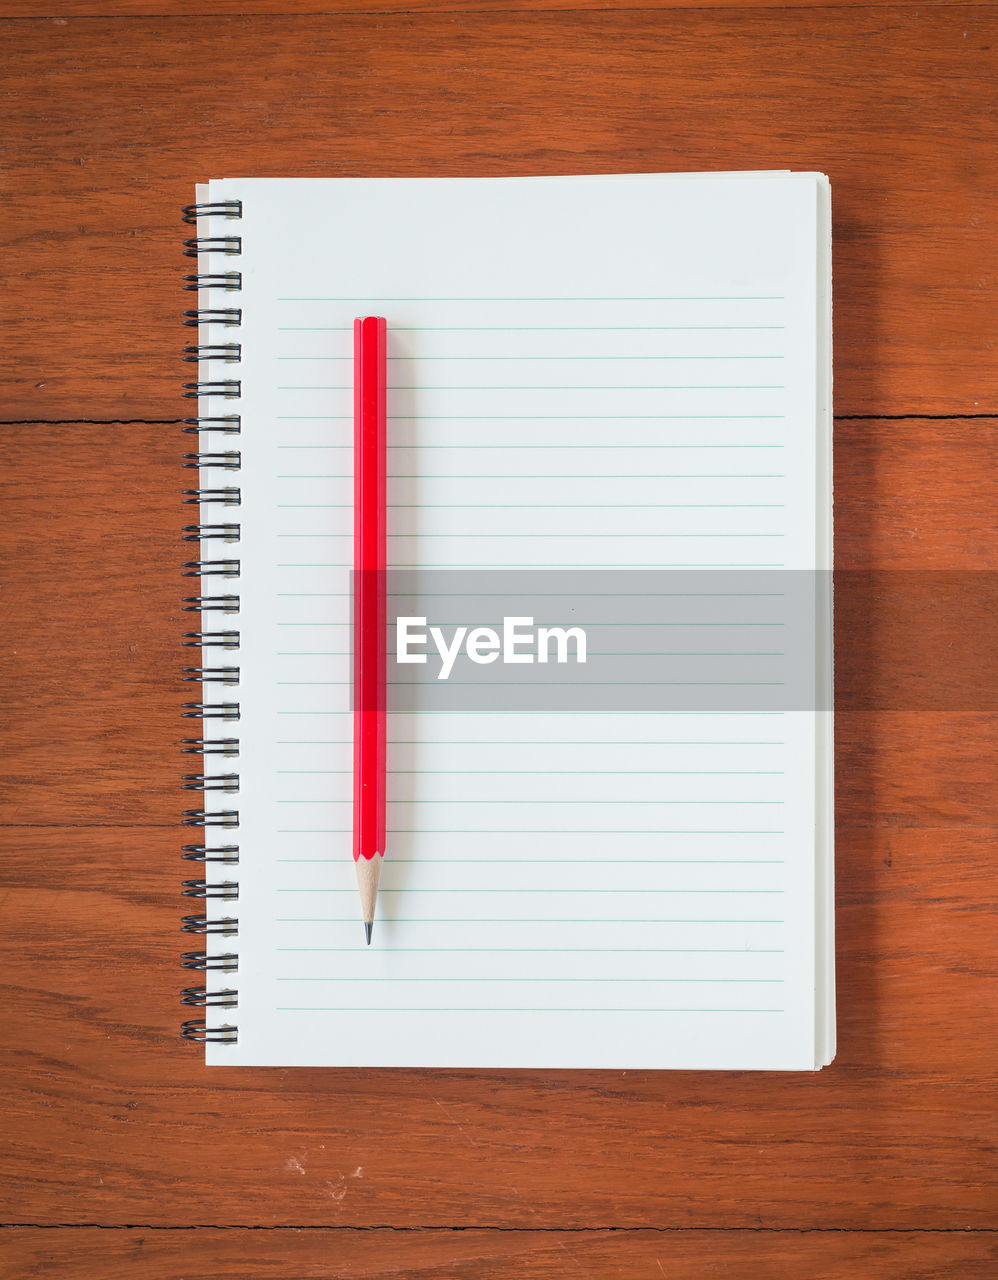 table, indoors, wood - material, directly above, no people, still life, note pad, publication, high angle view, book, pencil, education, page, spiral, spiral notebook, paper, red, writing instrument, white color, close-up, blank, wood grain